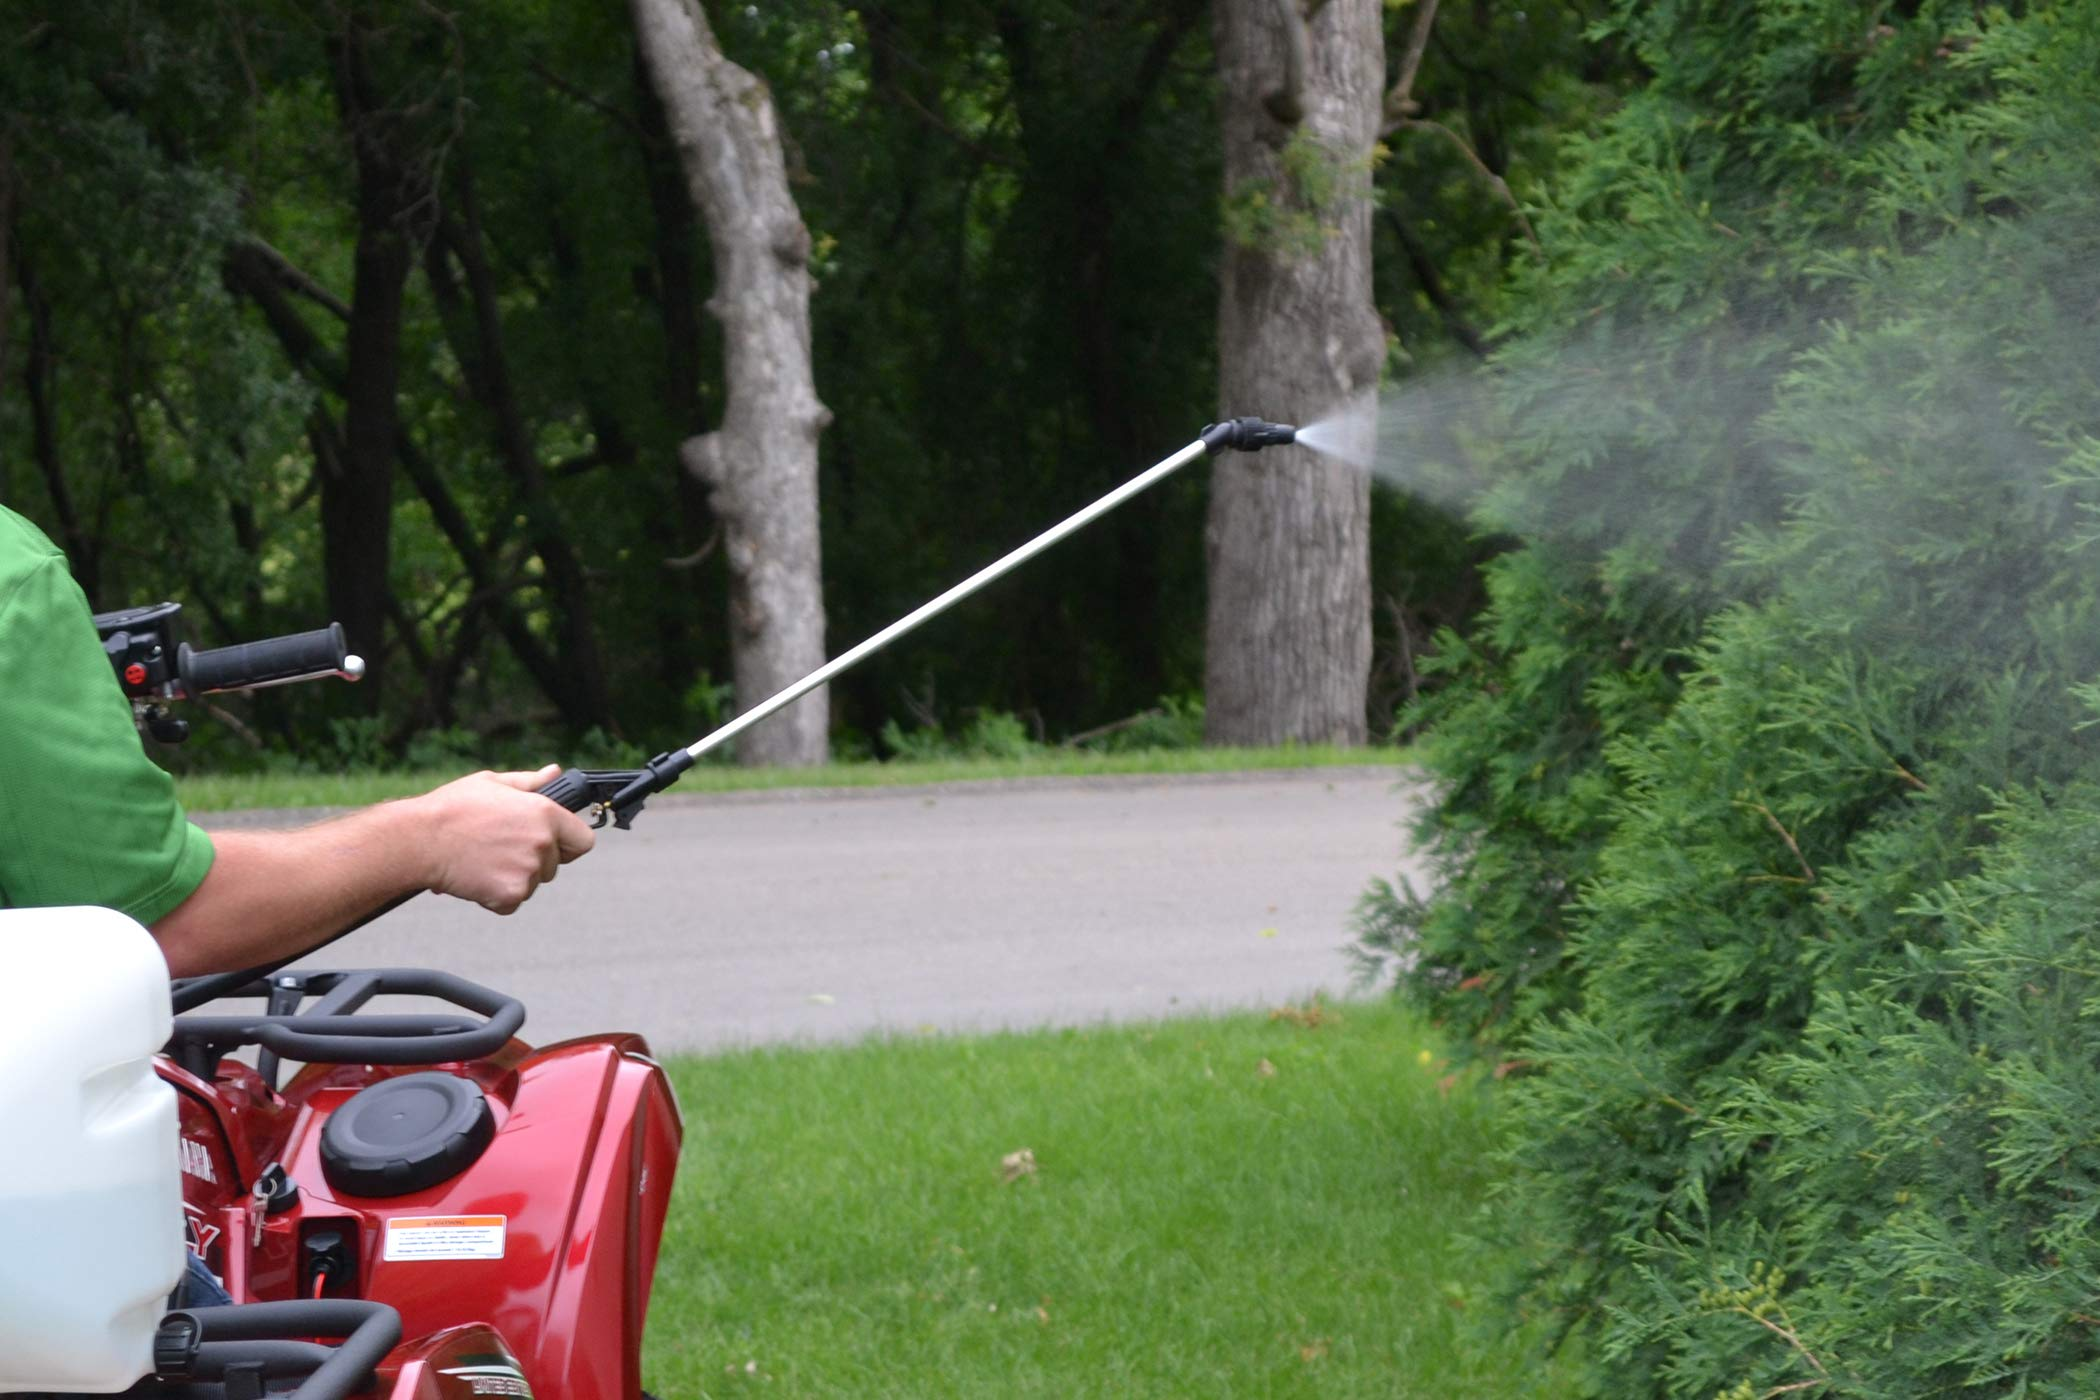 Master Manufacturing SSO-01-015A-MM 15 Gallon Spot Sprayer-Everflo 2.2 GPM by Master Manufacturing (Image #5)